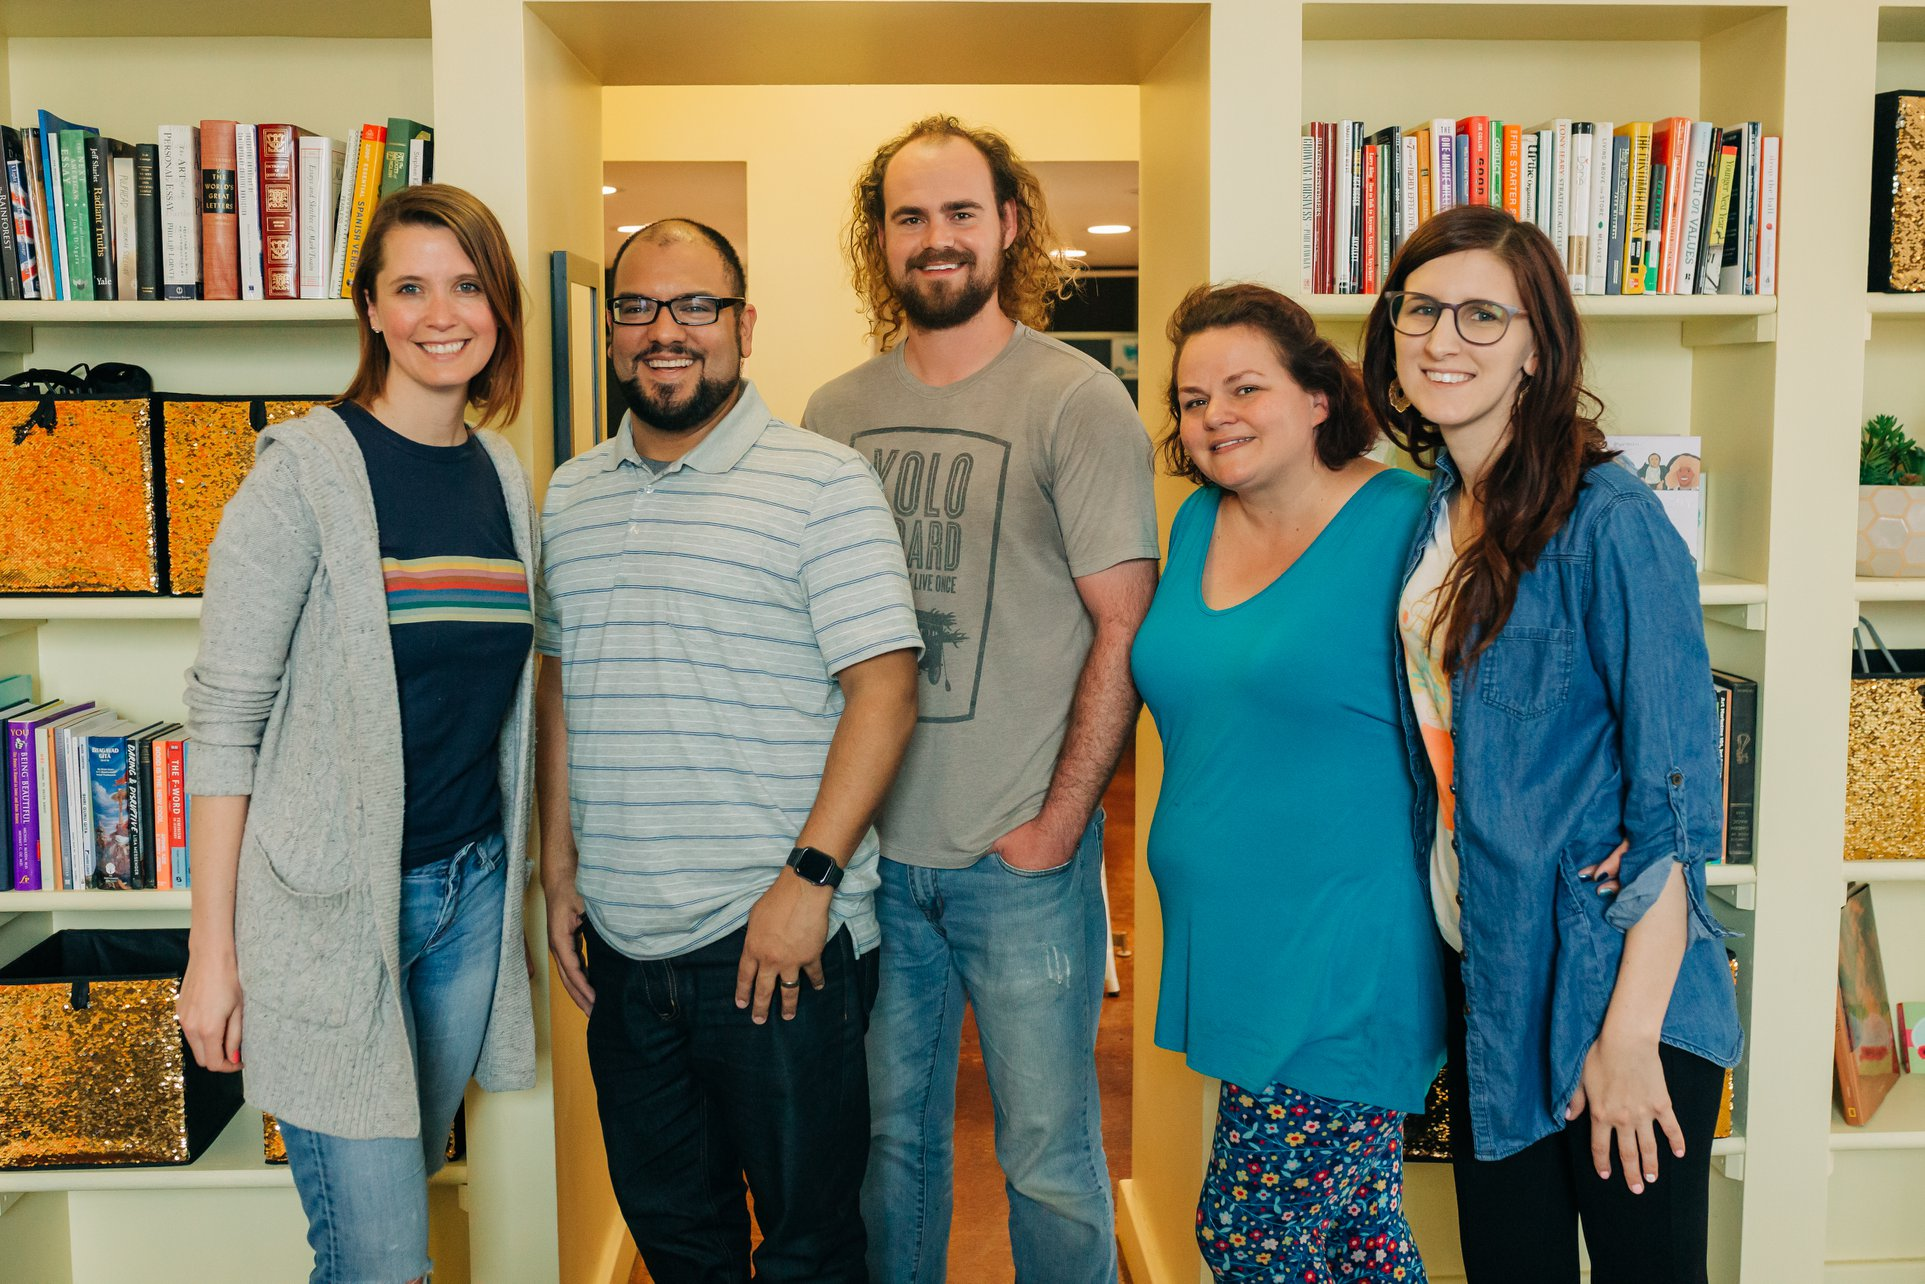 Renee joined Jason, Dylan, Rianne and Andrea at The Hive this month as a part of a joint collaboration with The Podcast Camp.